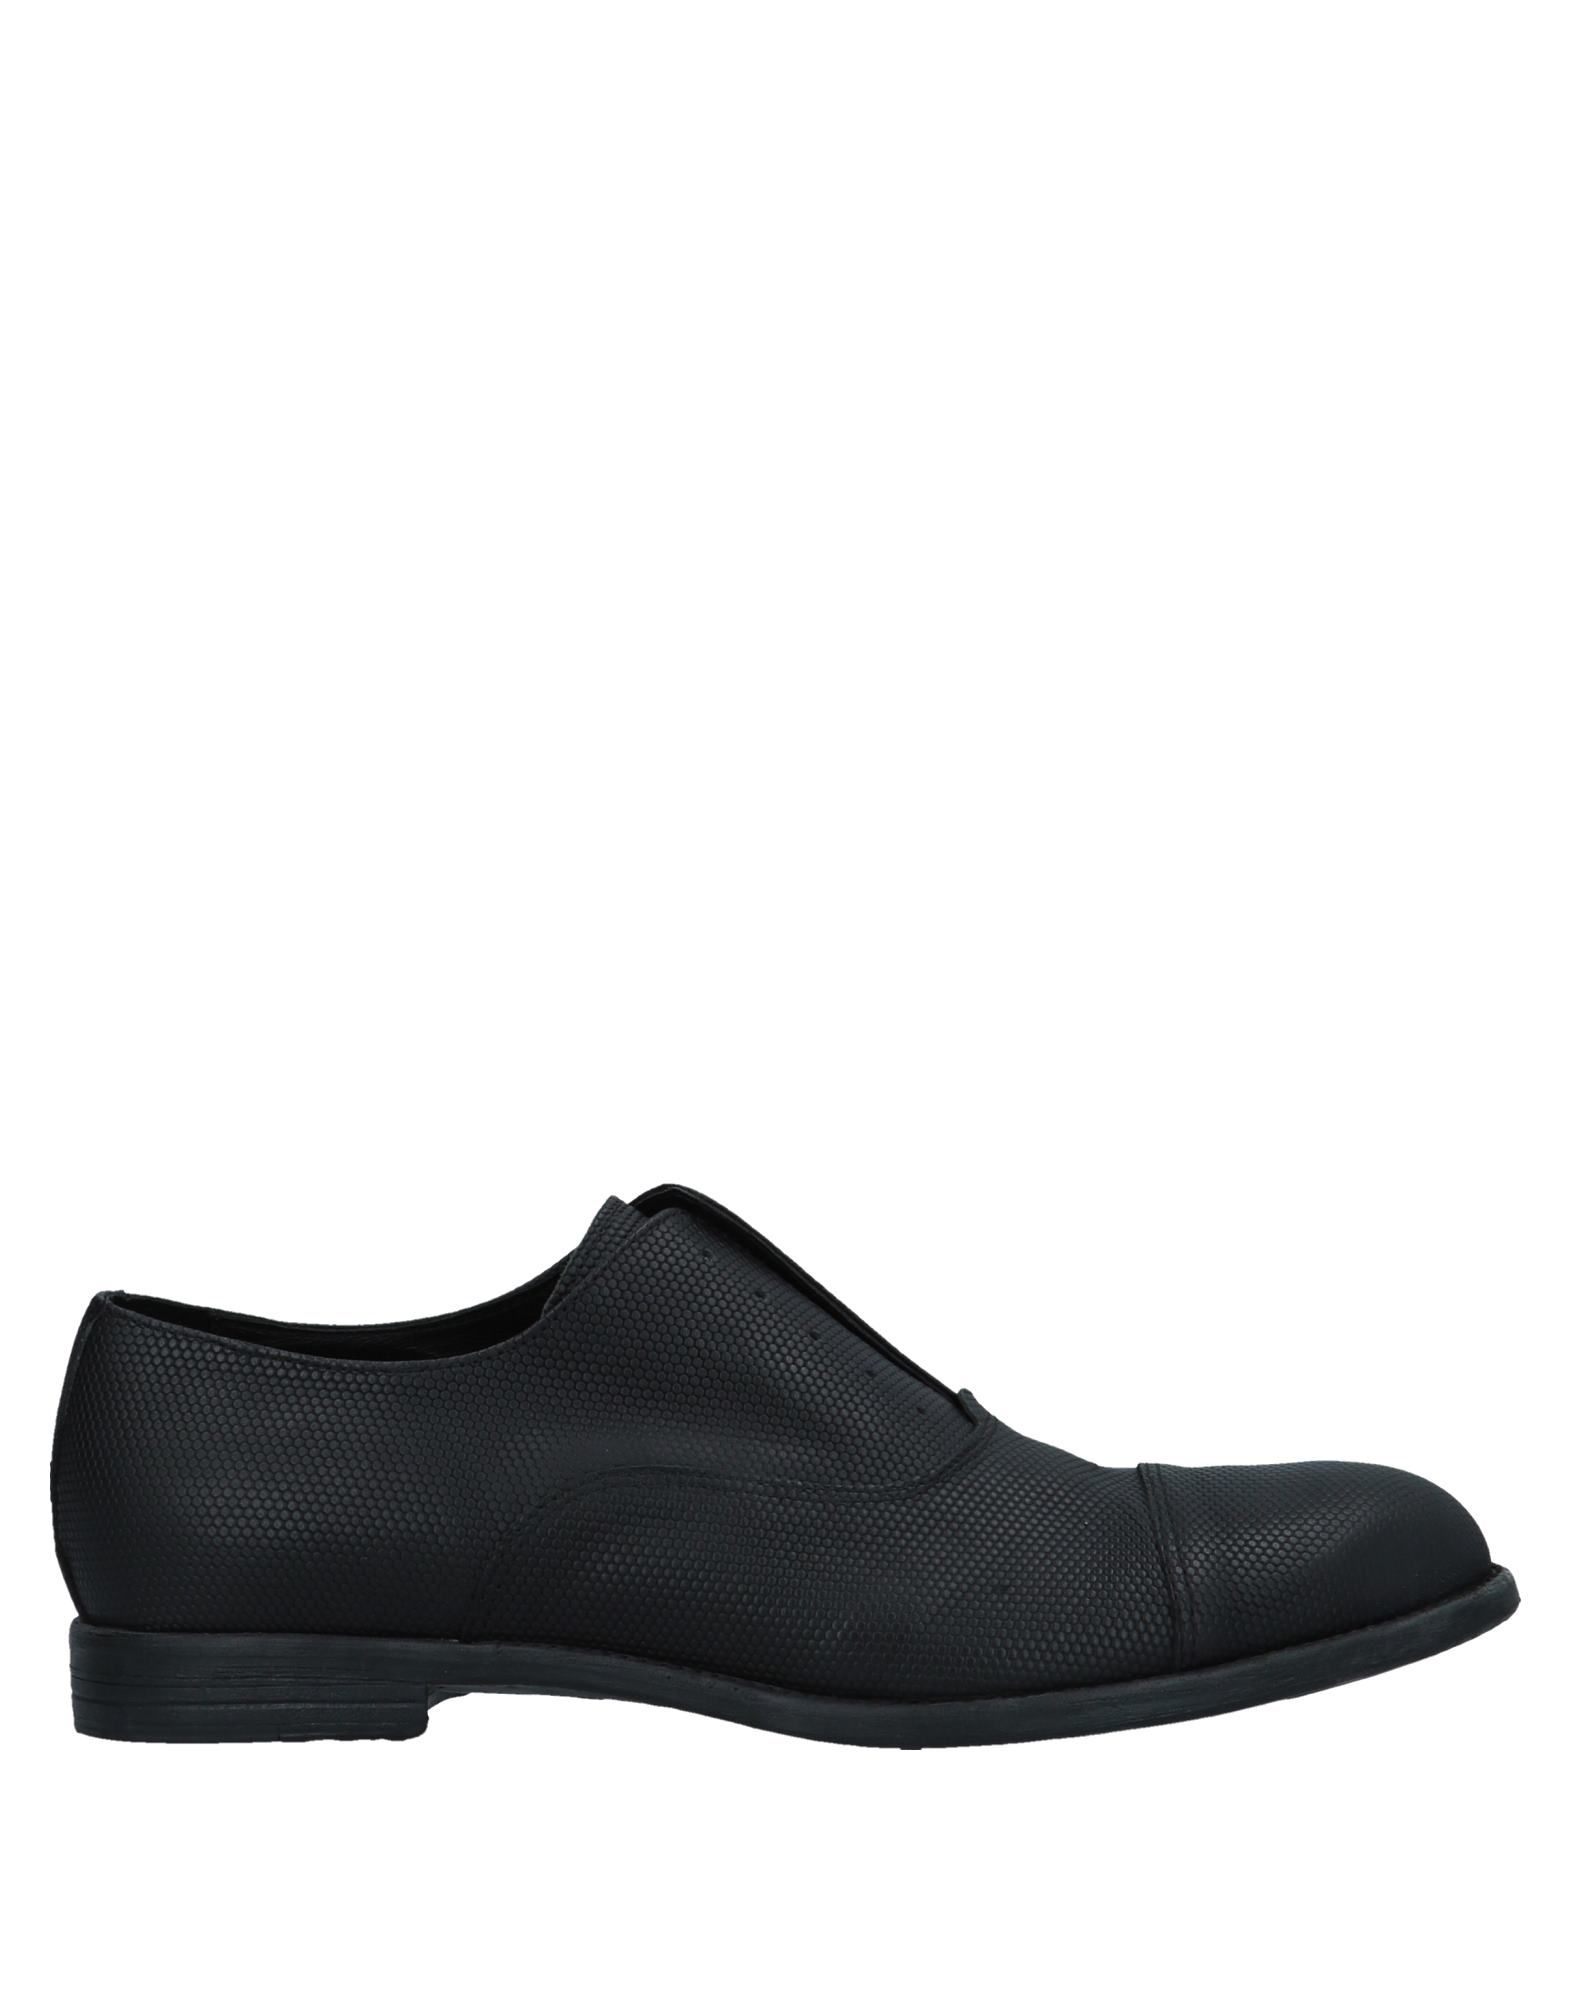 Officina 36 Loafers - Men Officina Officina Officina 36 Loafers online on  Australia - 11543567AV f353d7